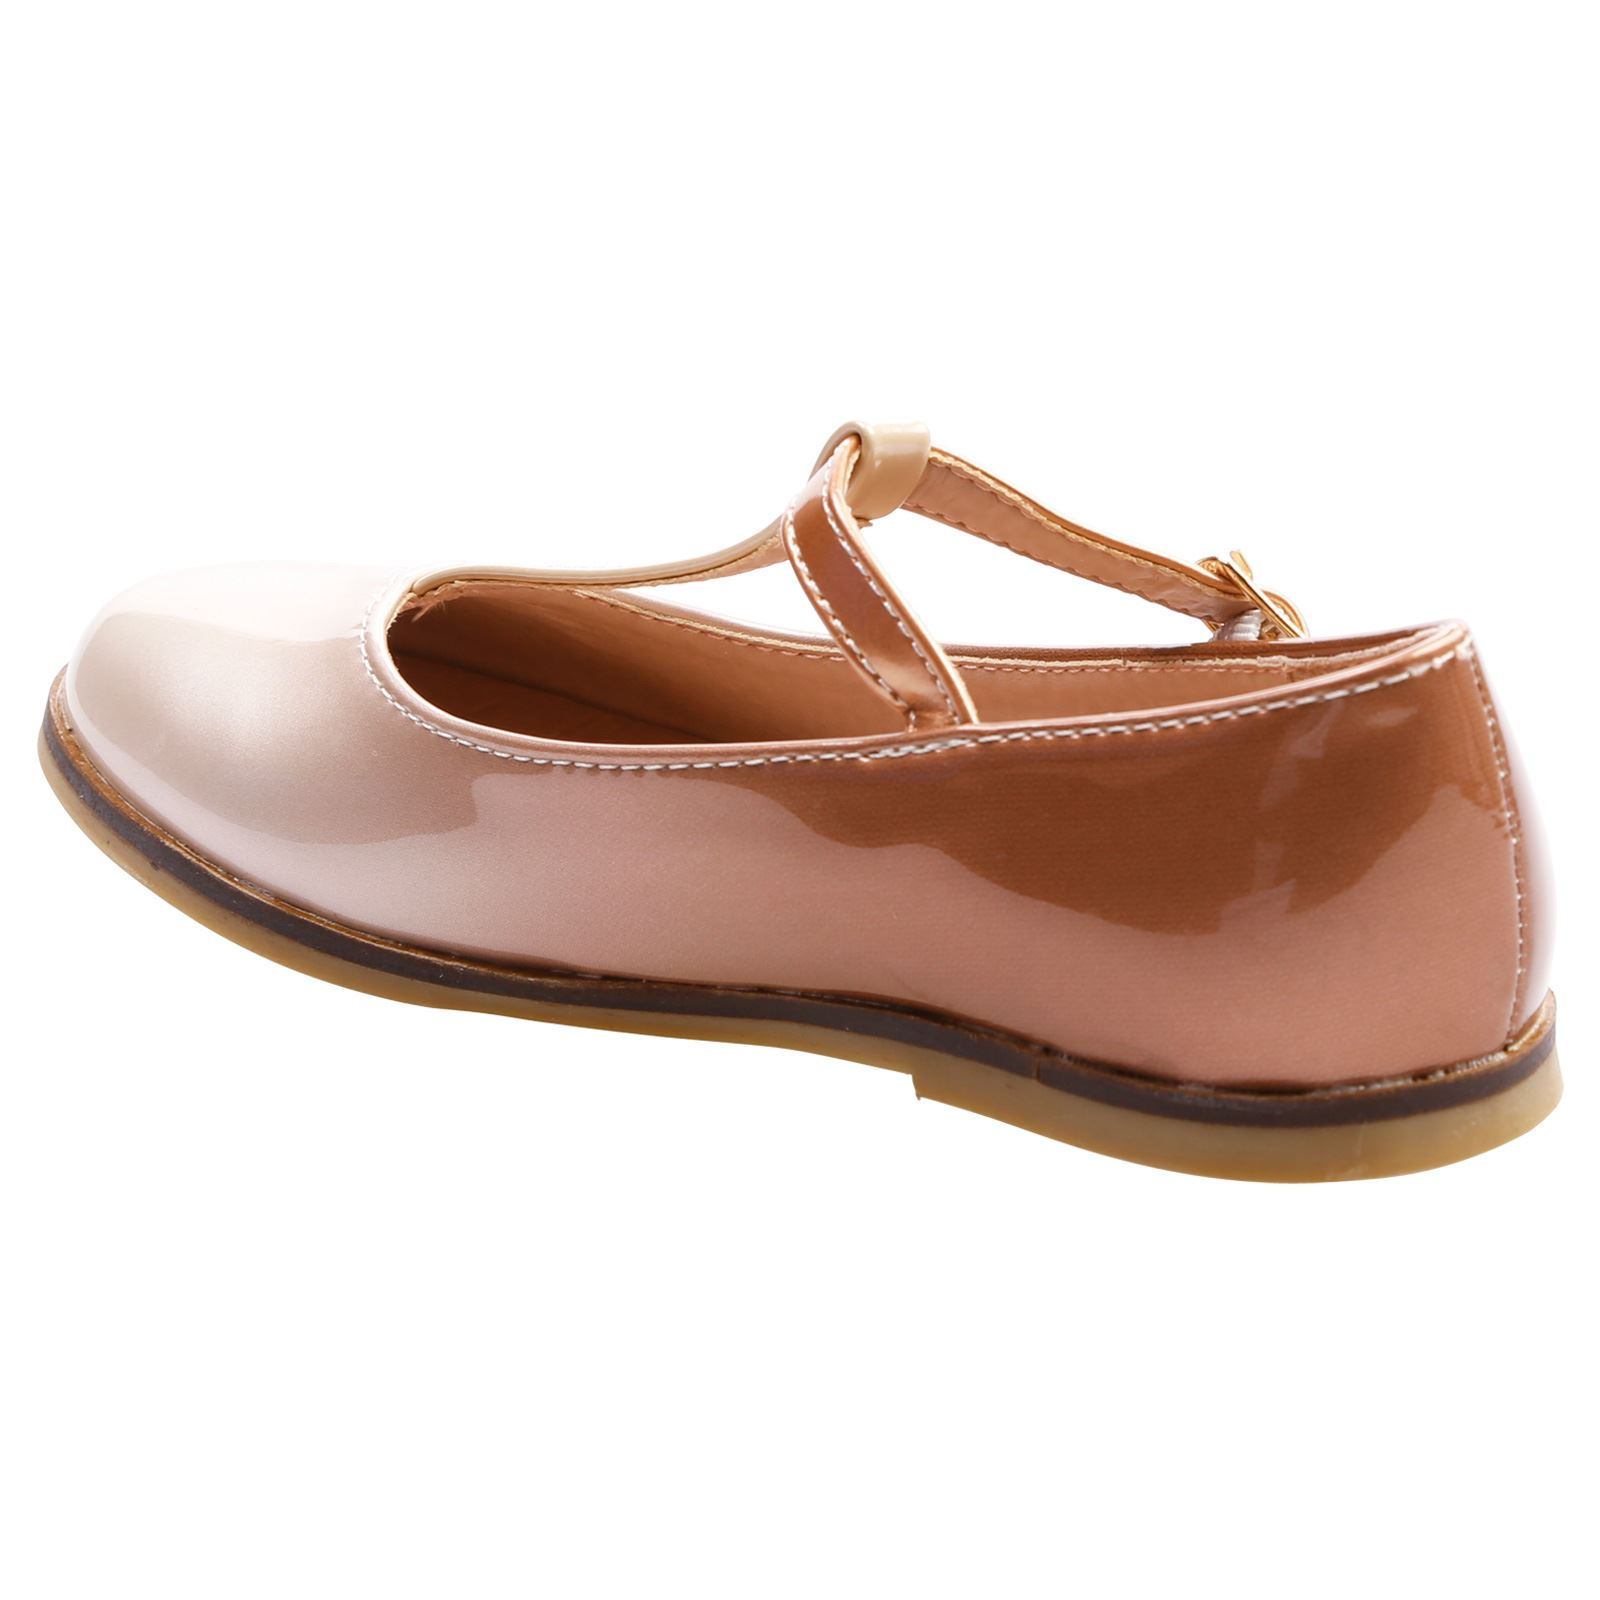 Maisey Girls Kids Flat Low Heel Ballerinas Pumps T Bar Mary Janes Shoes Size New